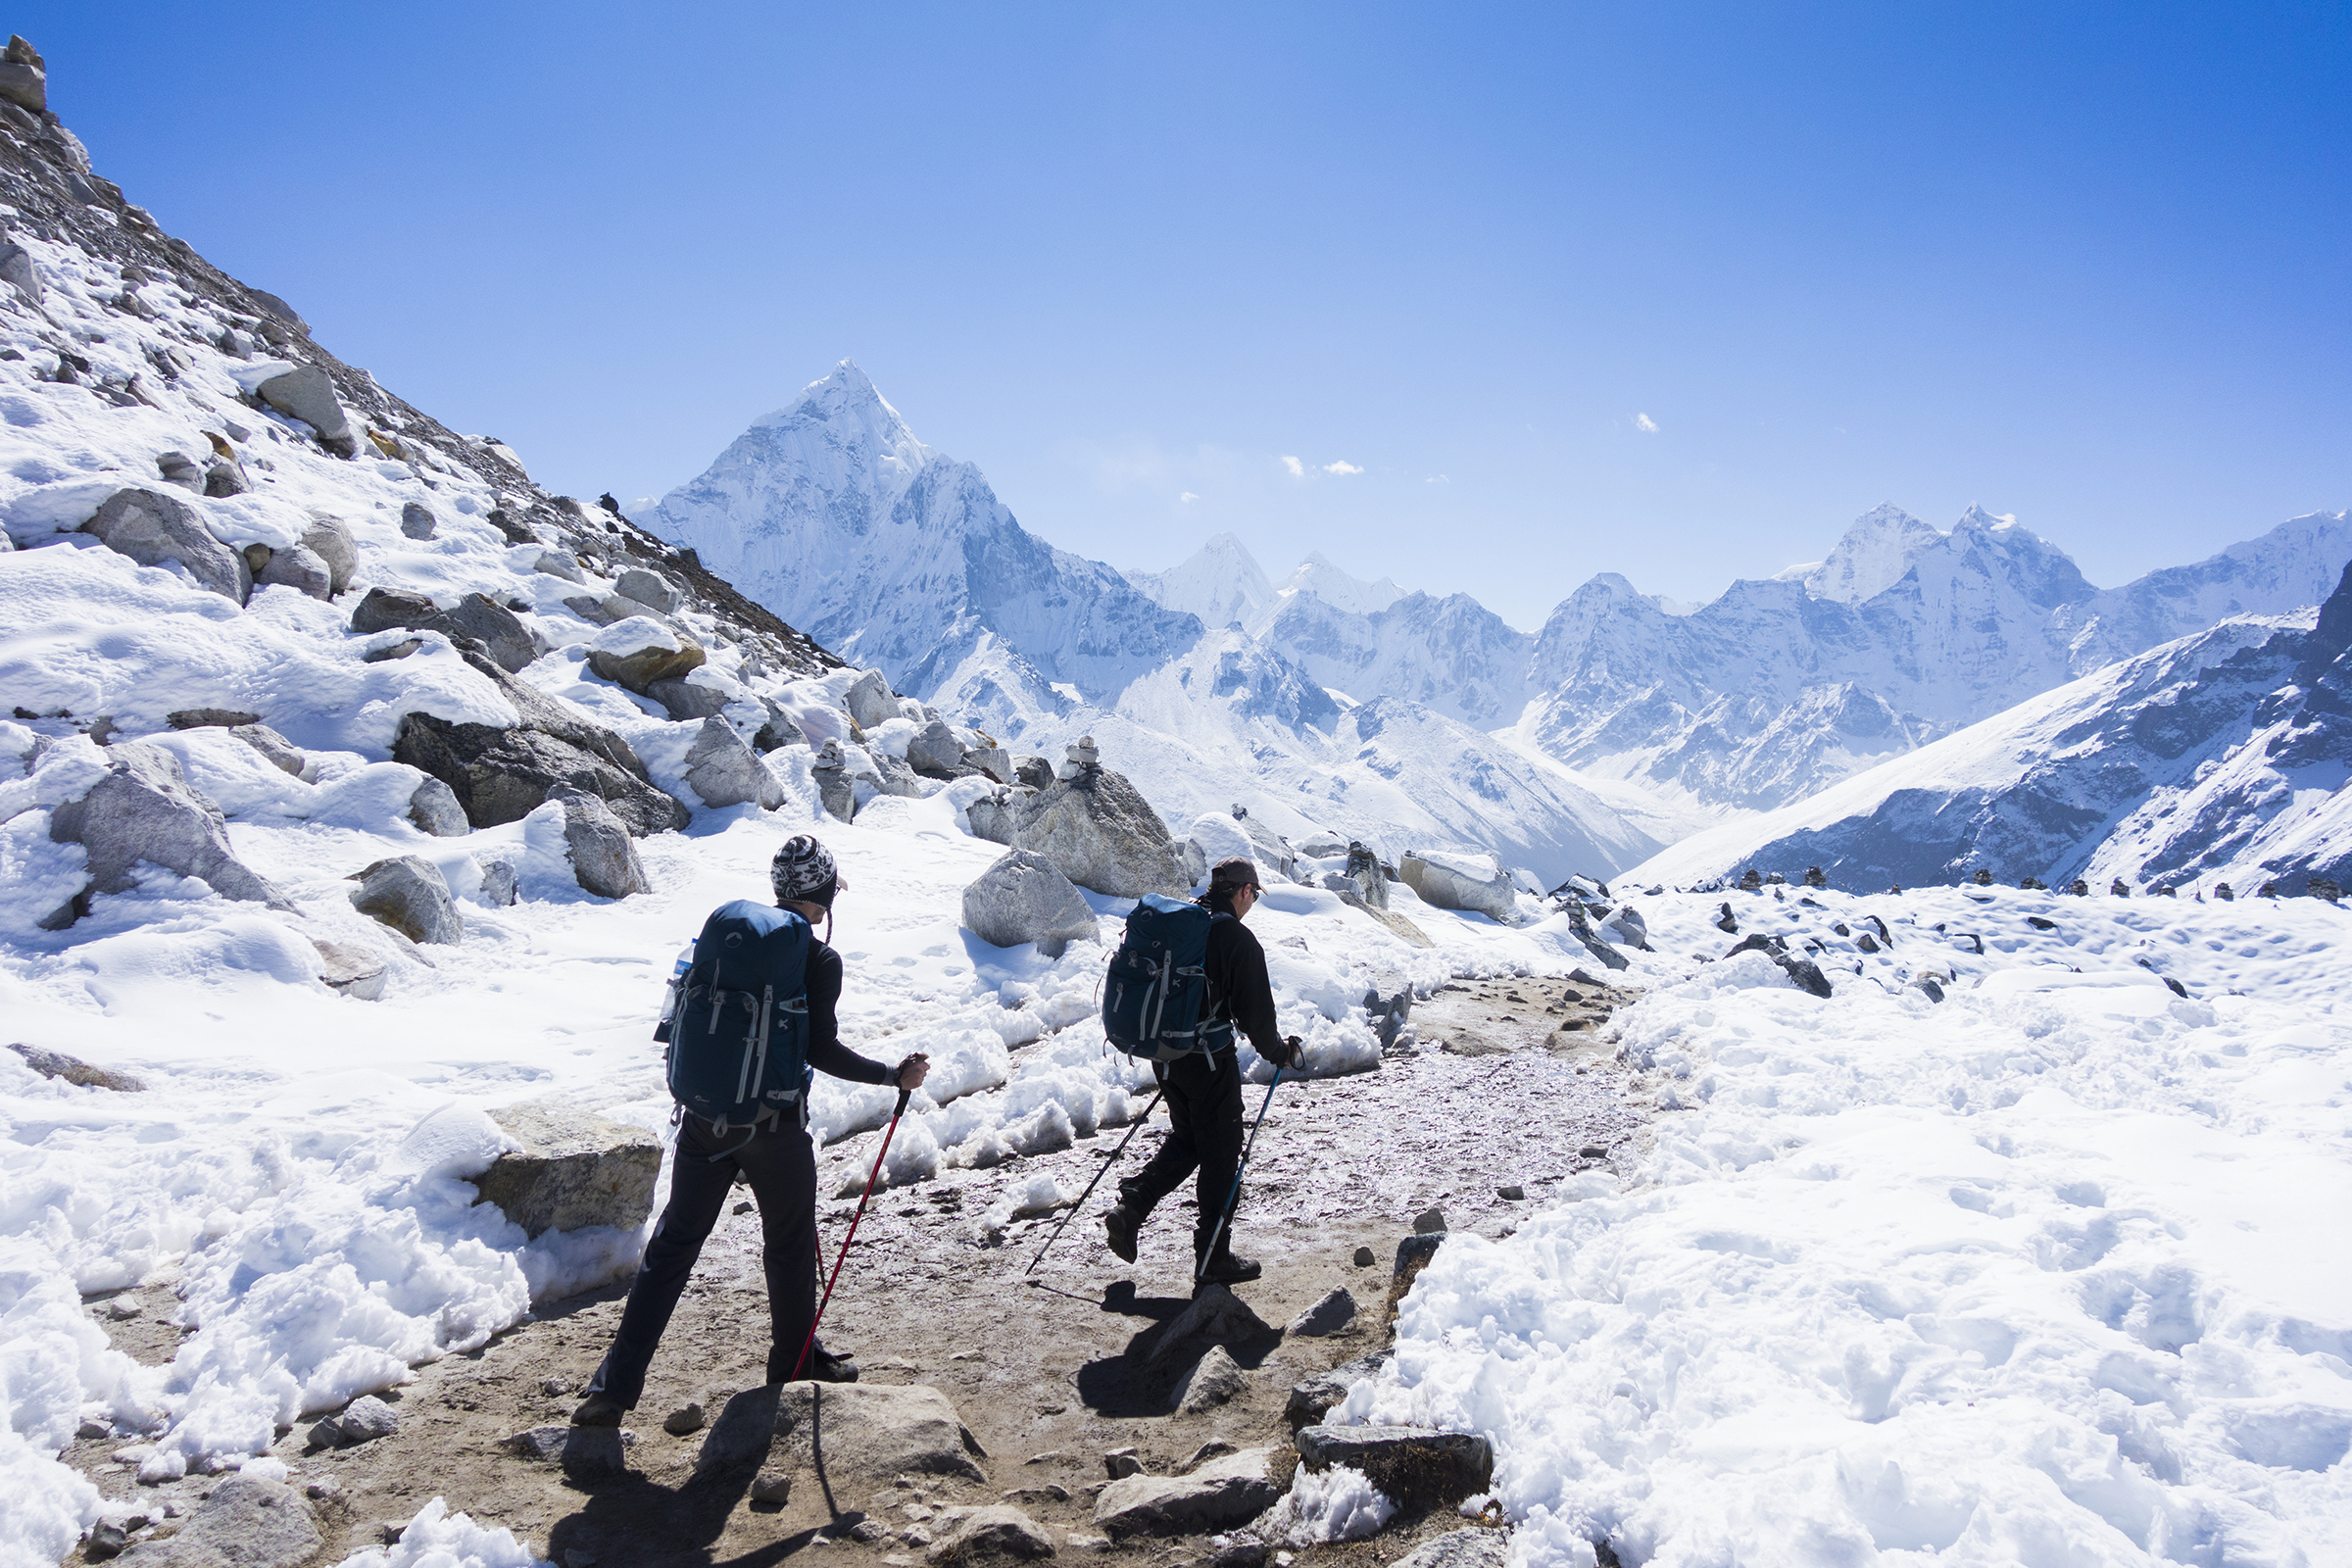 Trekking to Everest base cand in Nepal